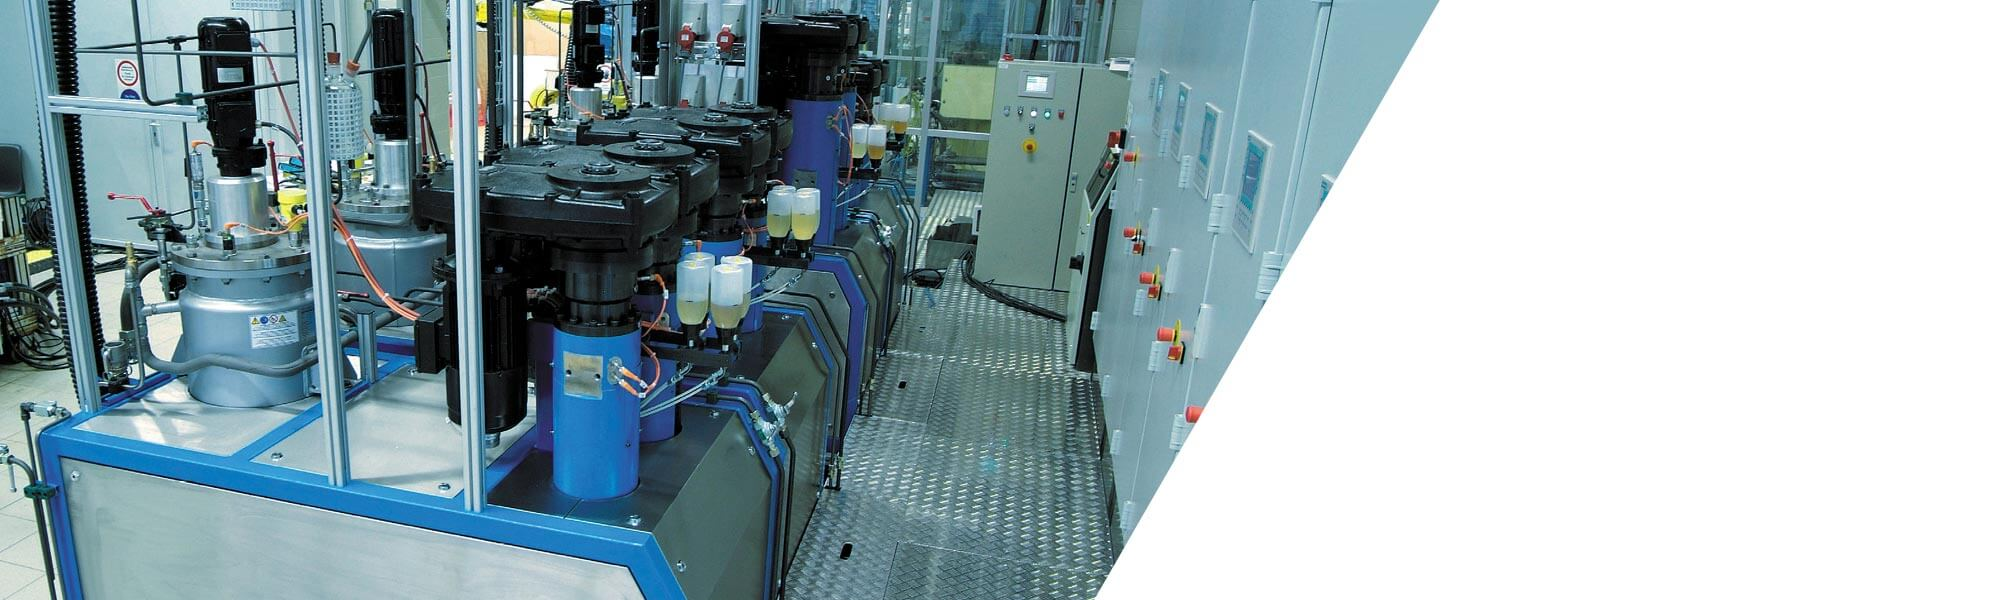 High-pressure piston metering machine for extreme requirements in the area of filled PUR systems